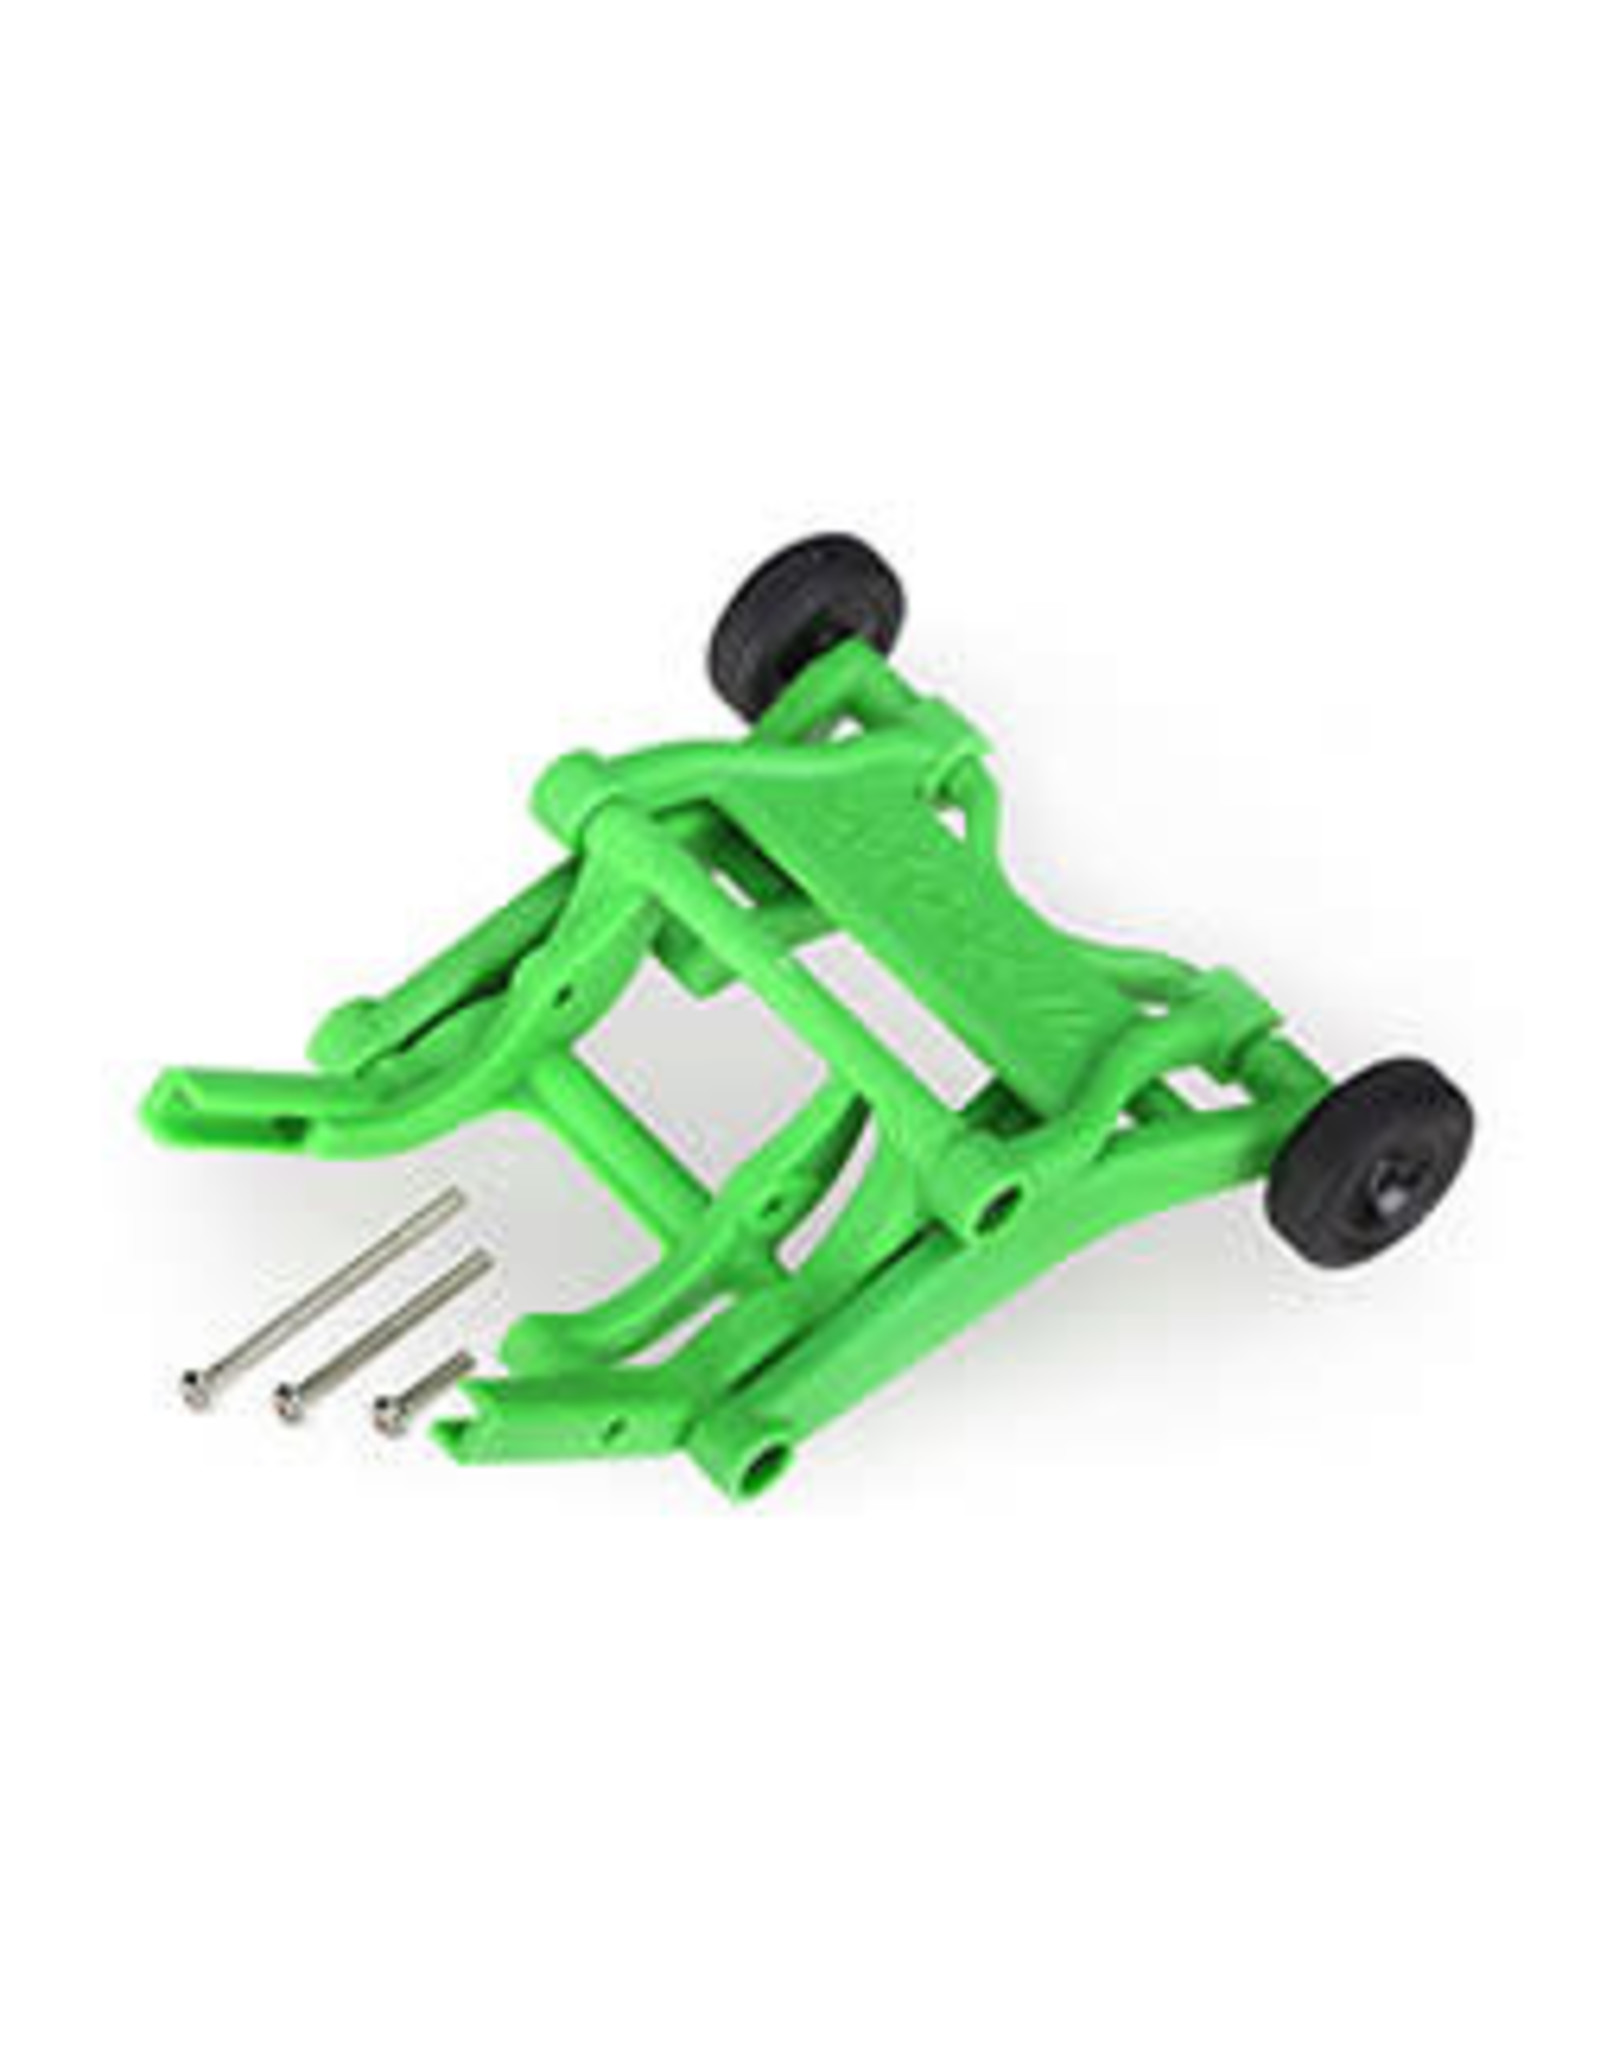 Traxxas Traxxas Wheelie Bar Assembled Green 3678a